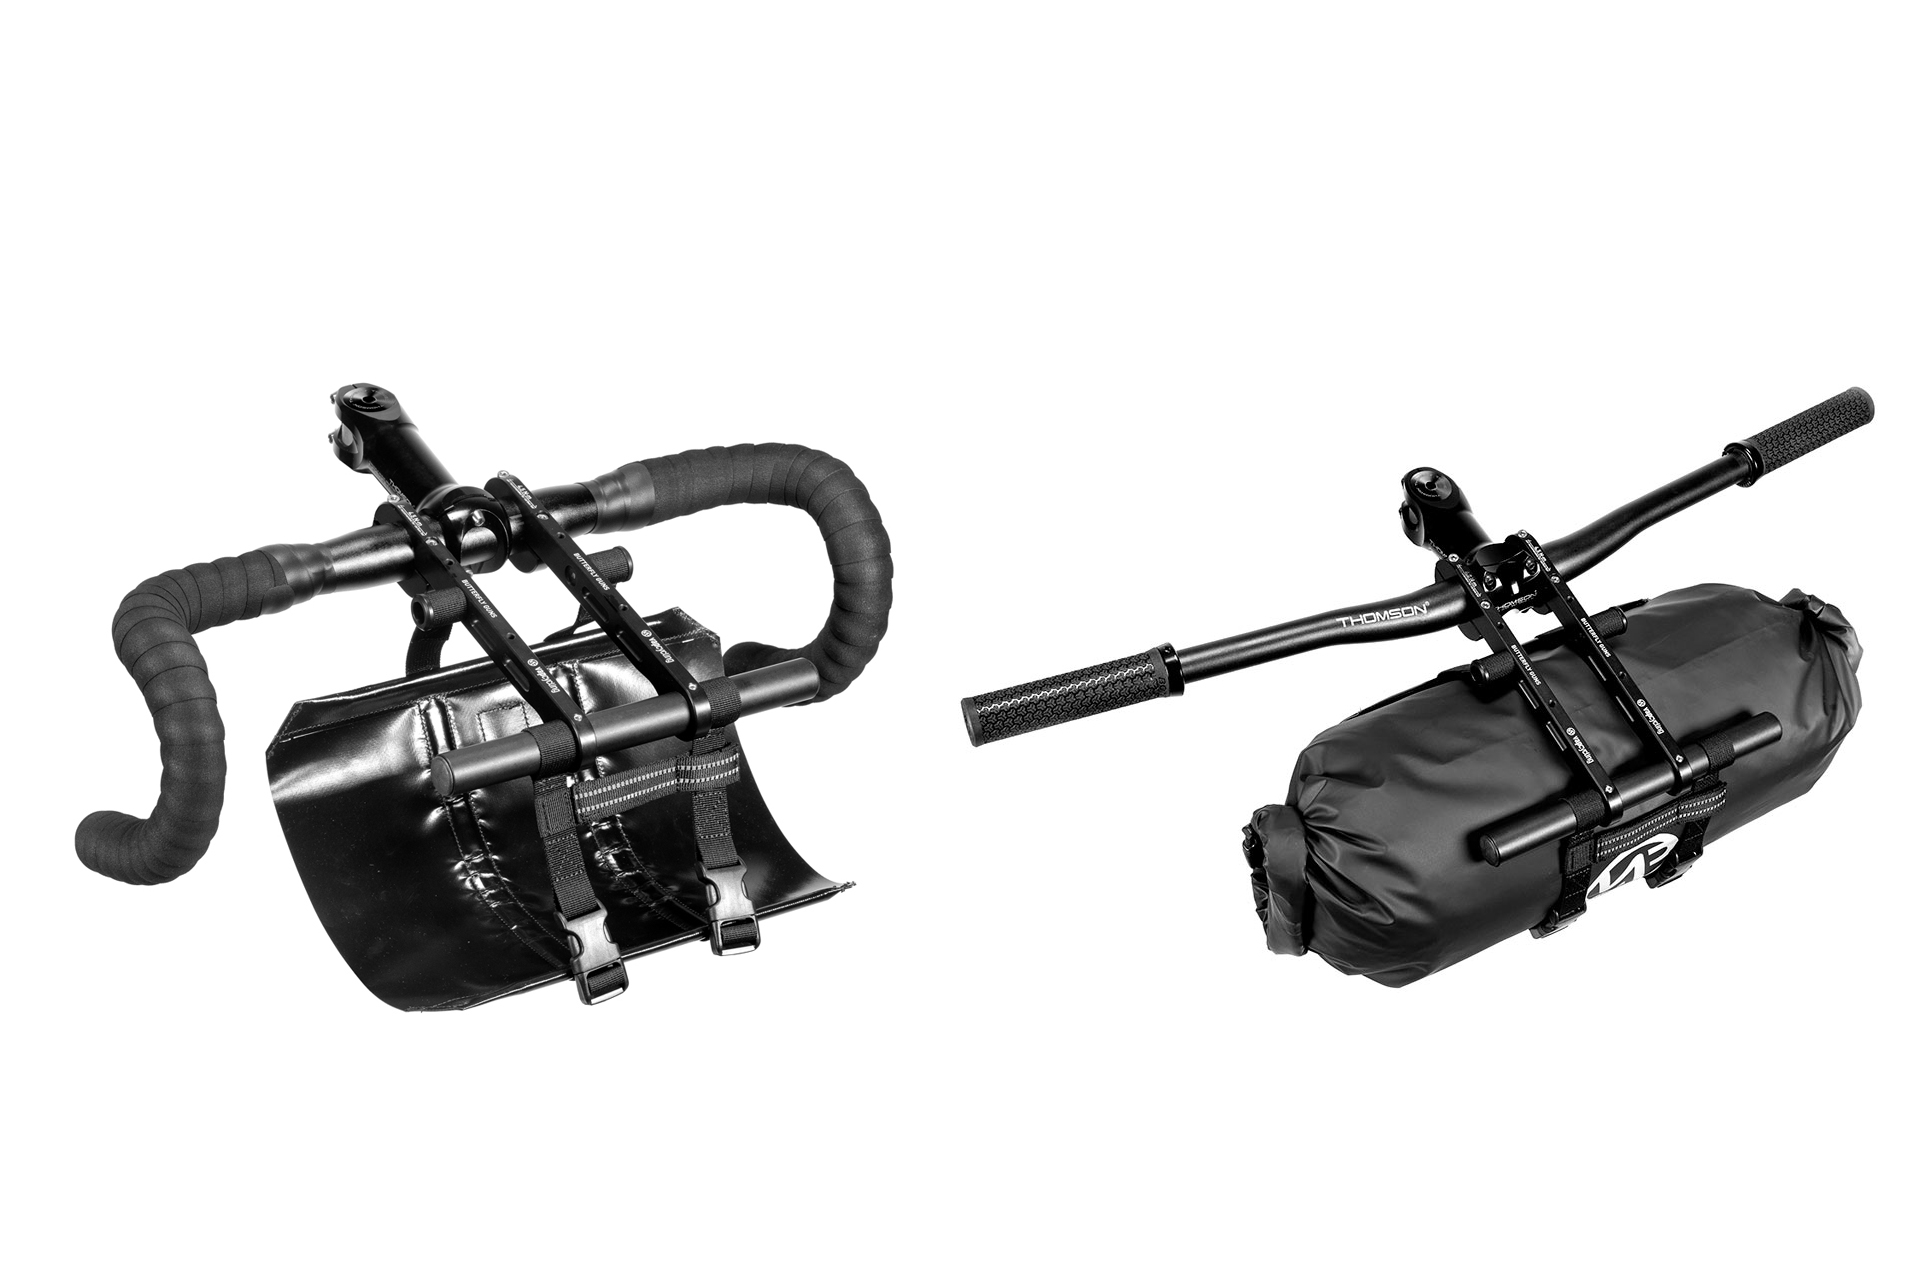 Vapcycling's Unique Butterfly Guns Handlebar Bikepacking Bag Harness